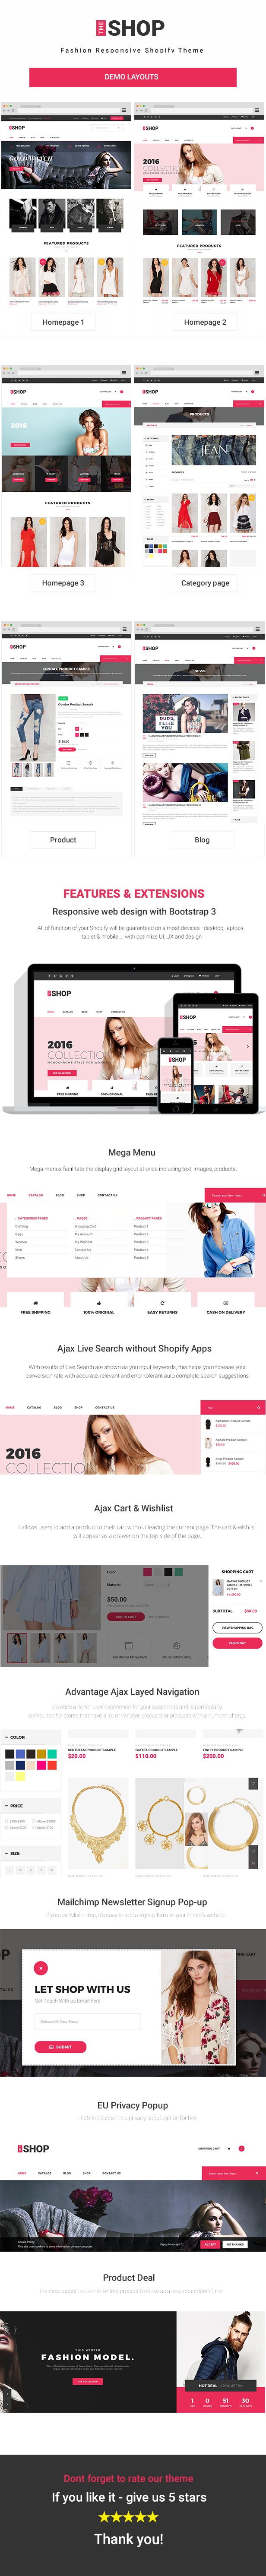 Clothing & Fashion Responsive Shopify Theme - TheShop